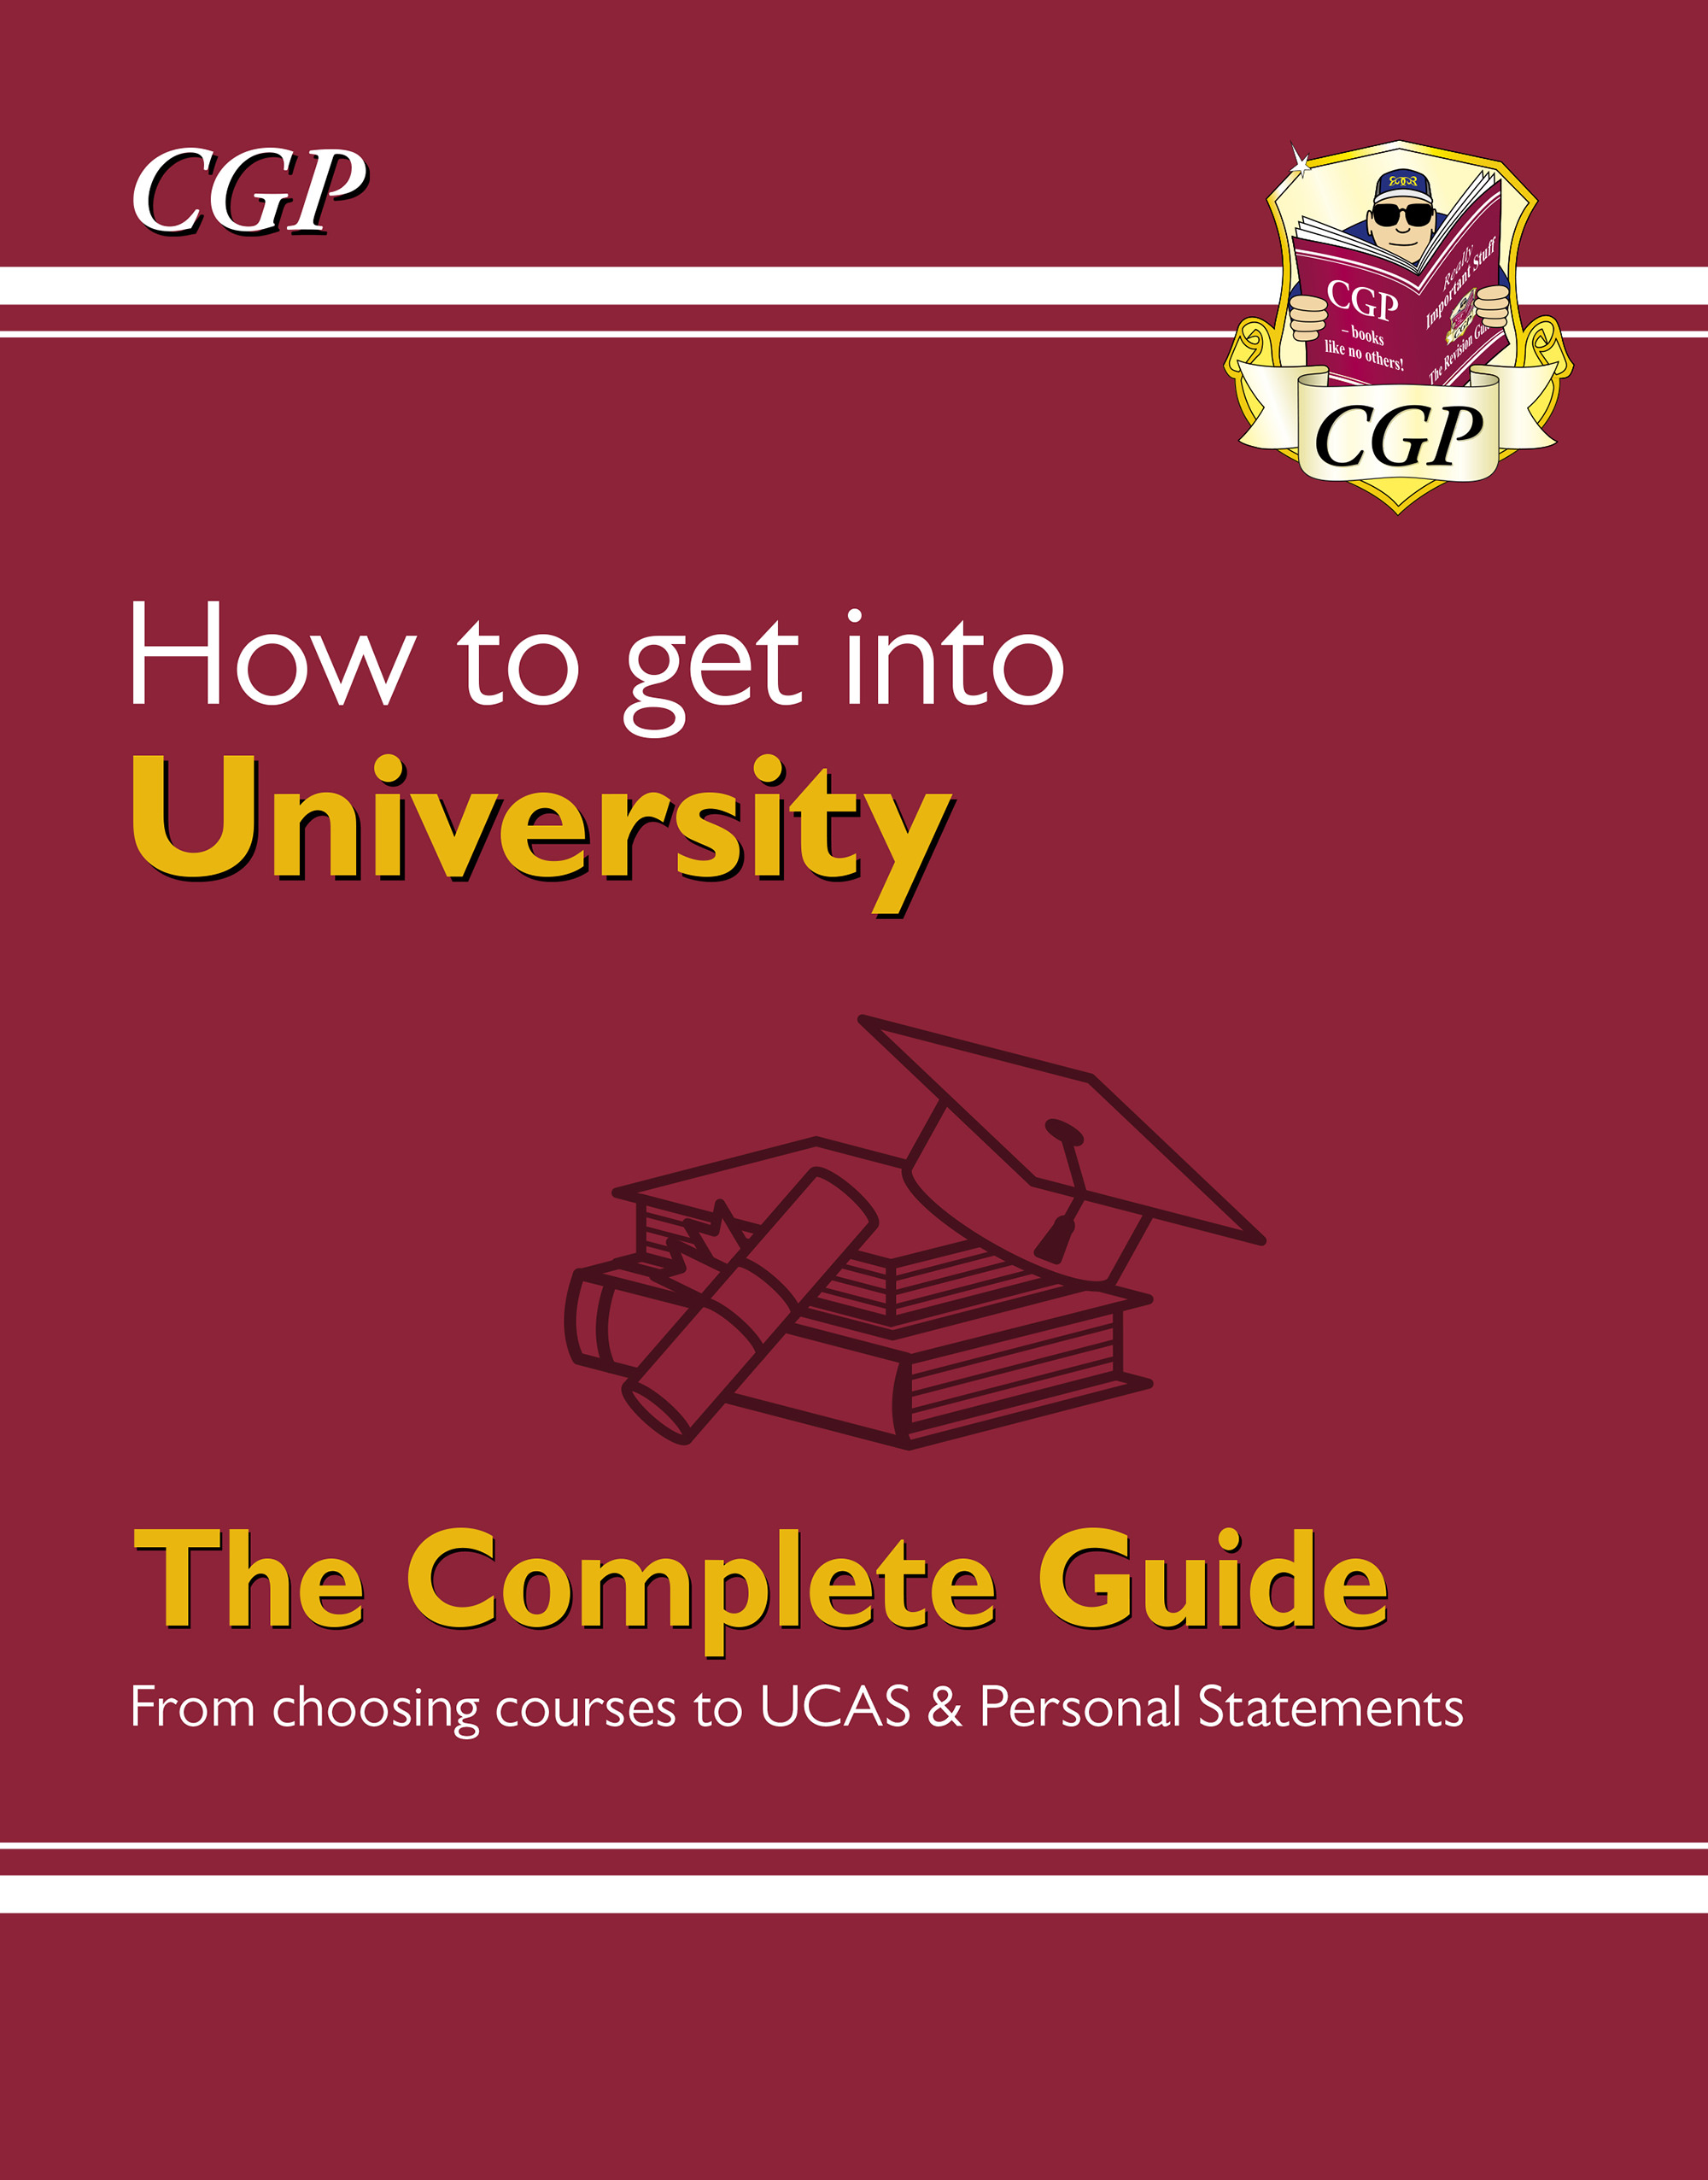 XHUR71D - How to get into University: From choosing courses to UCAS and Personal Statements Onl Ed